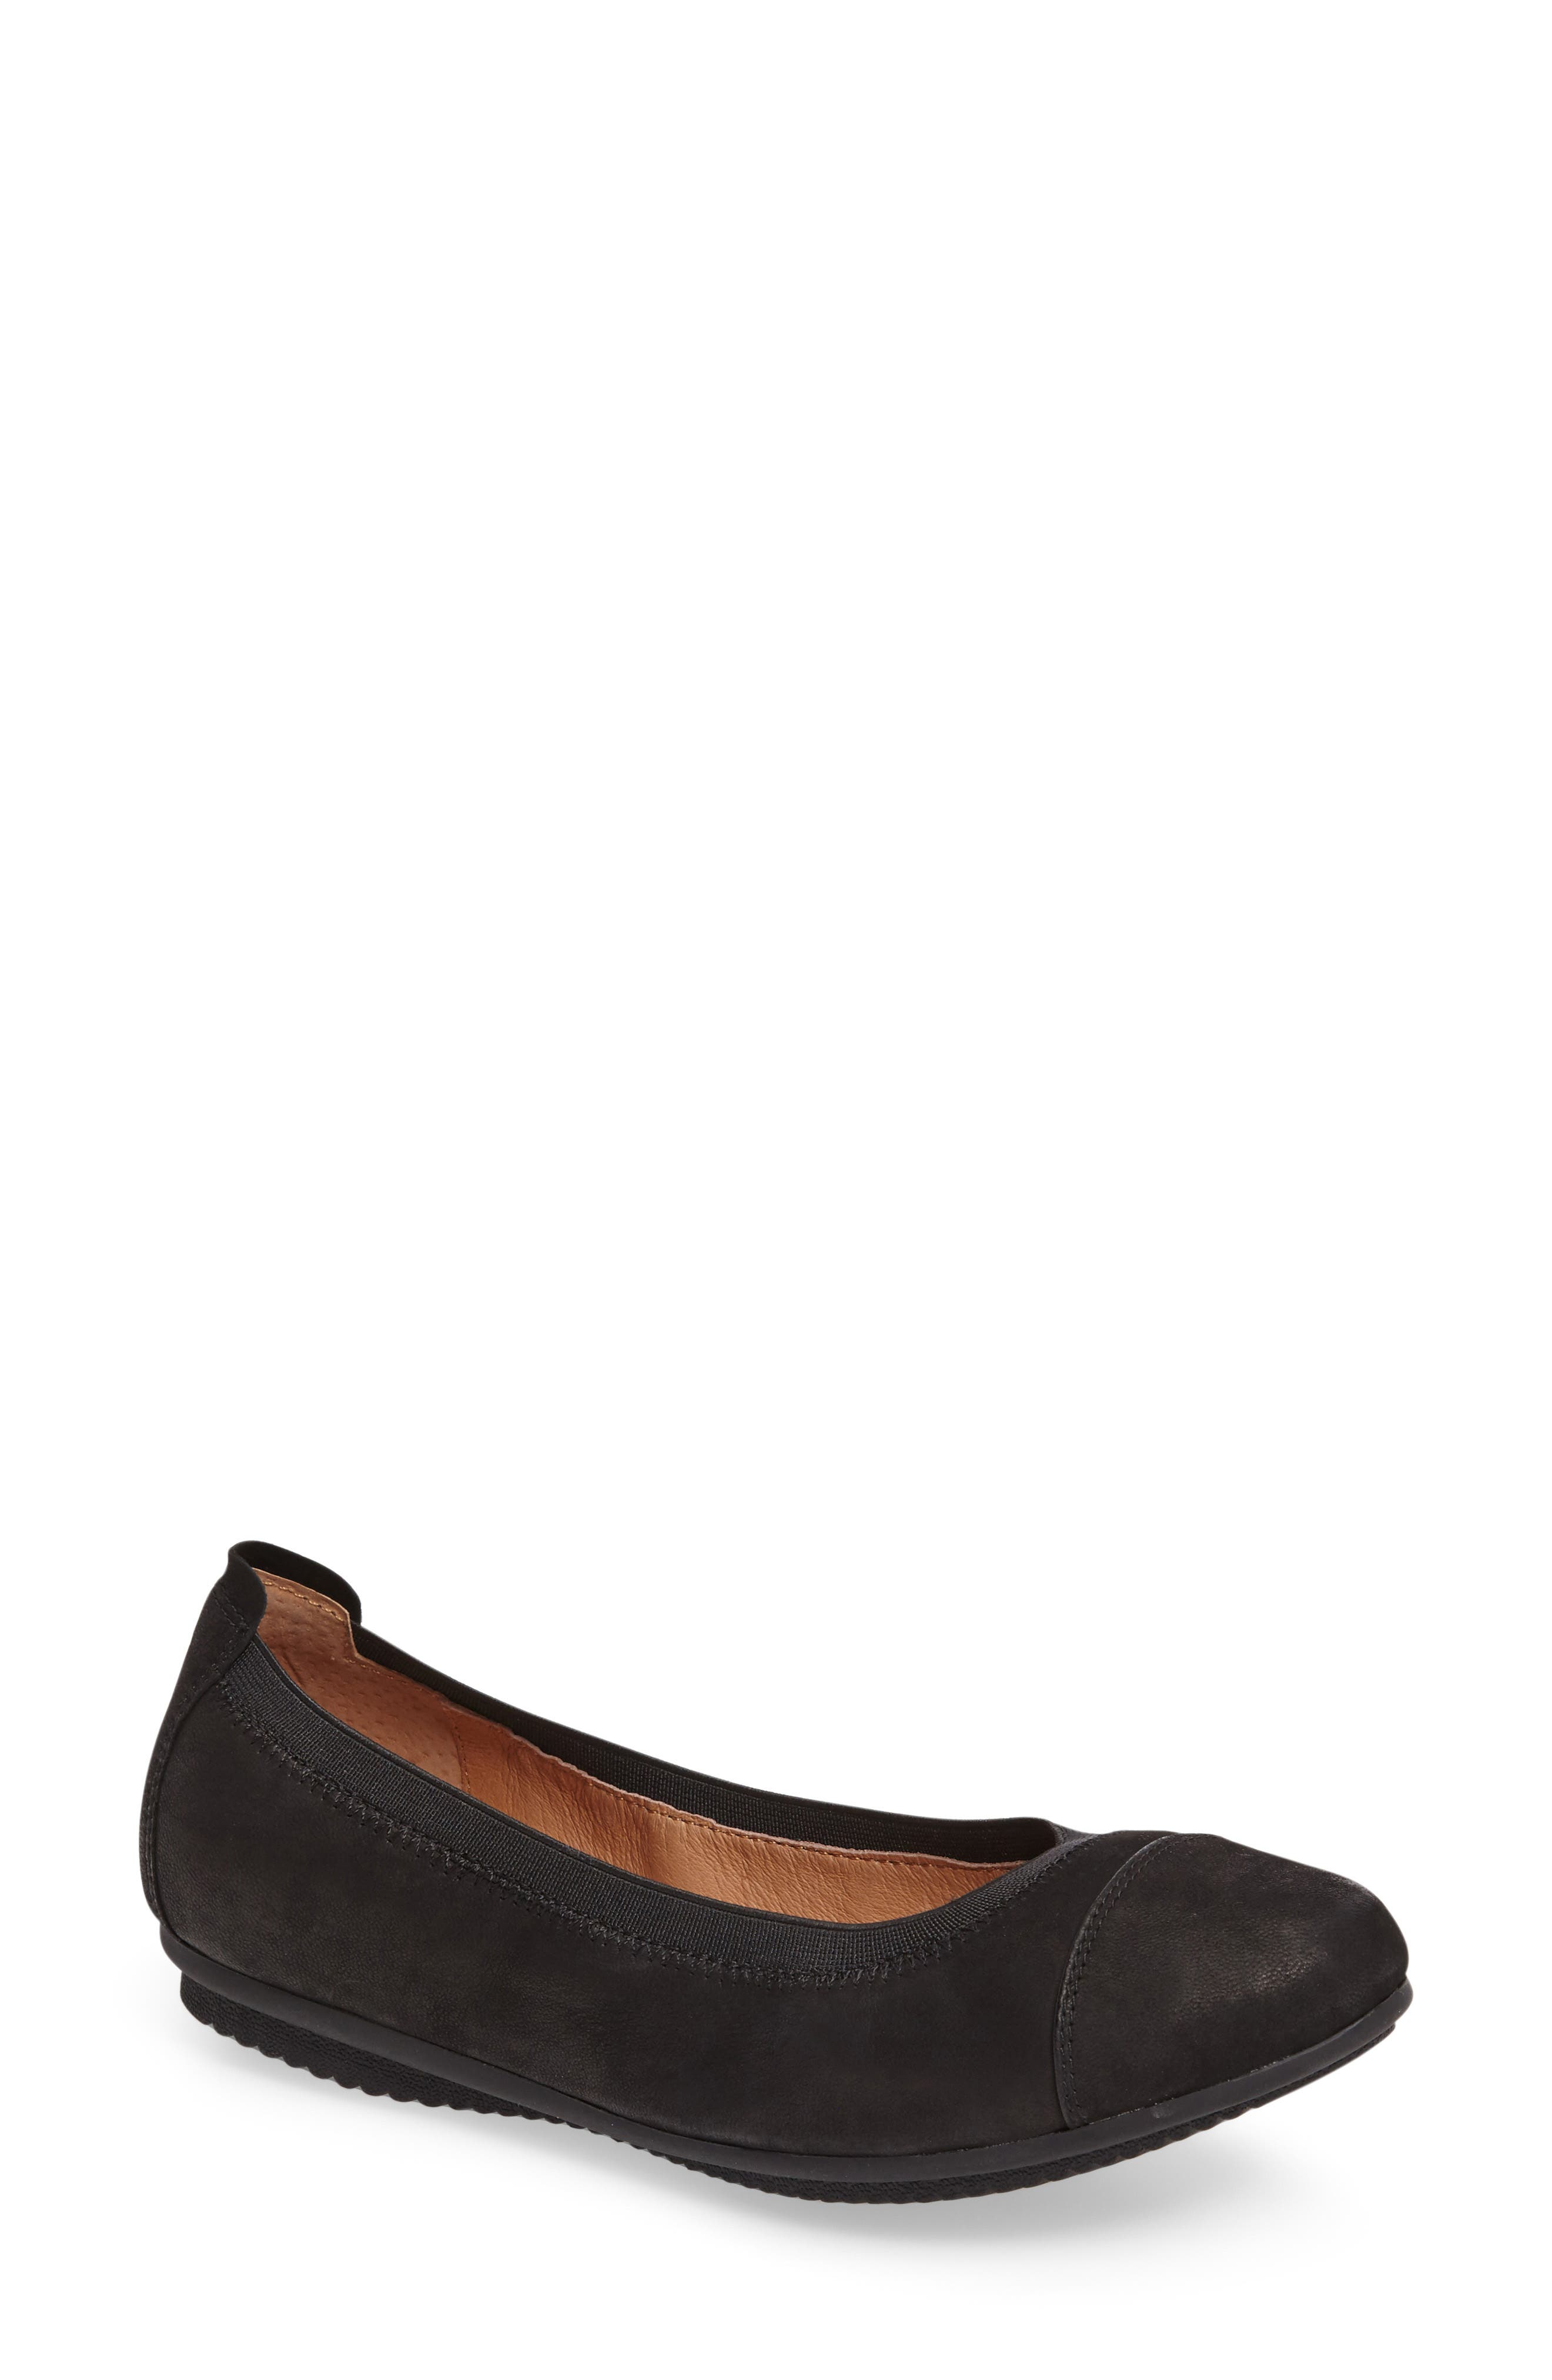 Pippa 07 Flat,                         Main,                         color, BLACK OIL LEATHER